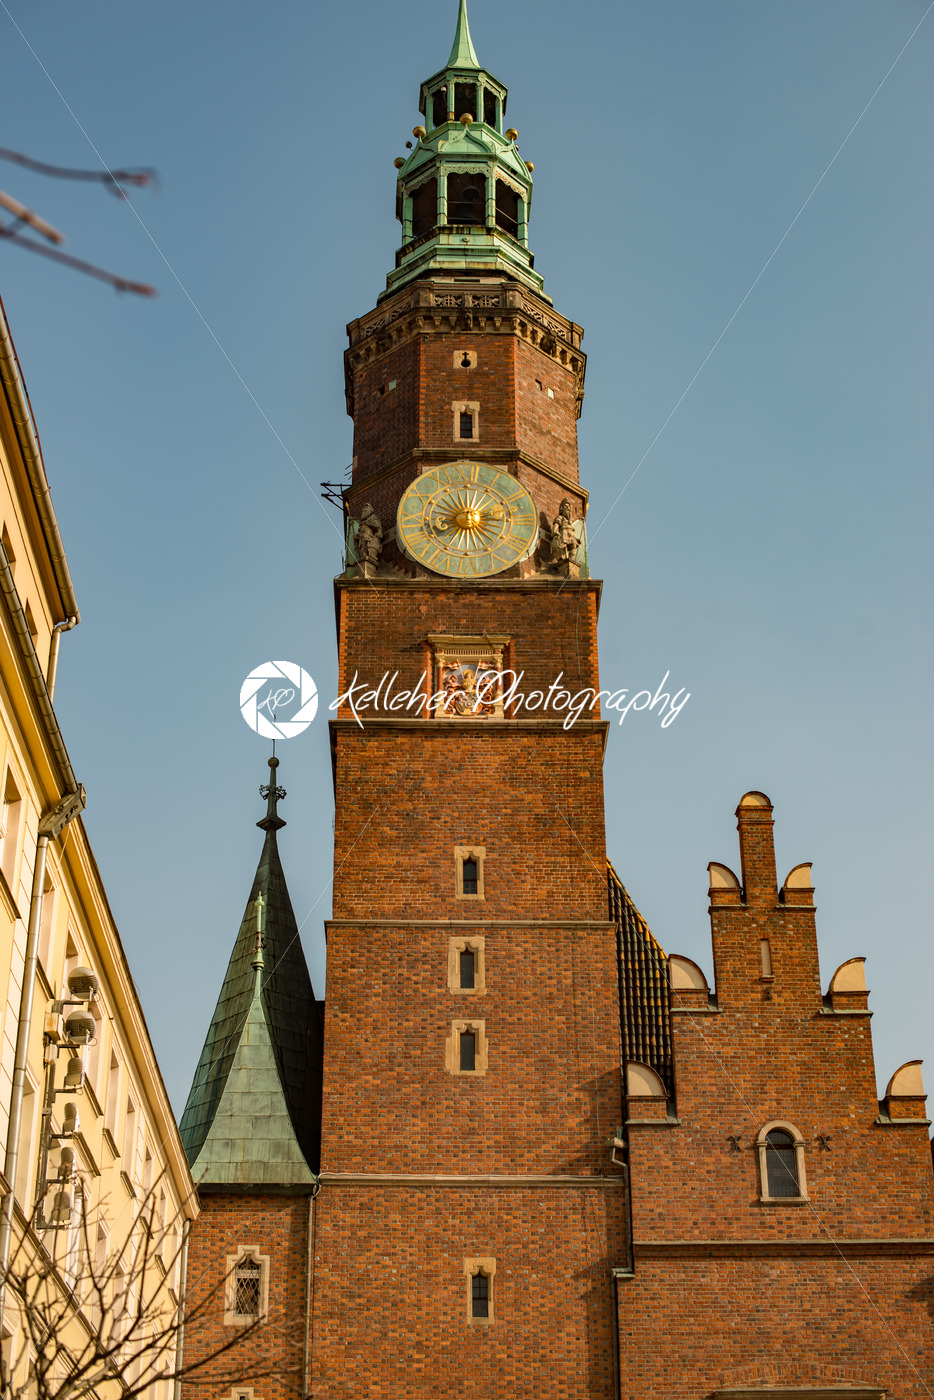 Wroclaw, Poland – March 4, 2018: Wroclaw Town Hall clock tower in evening in historic capital of Silesia, Poland, Europe. - Kelleher Photography Store